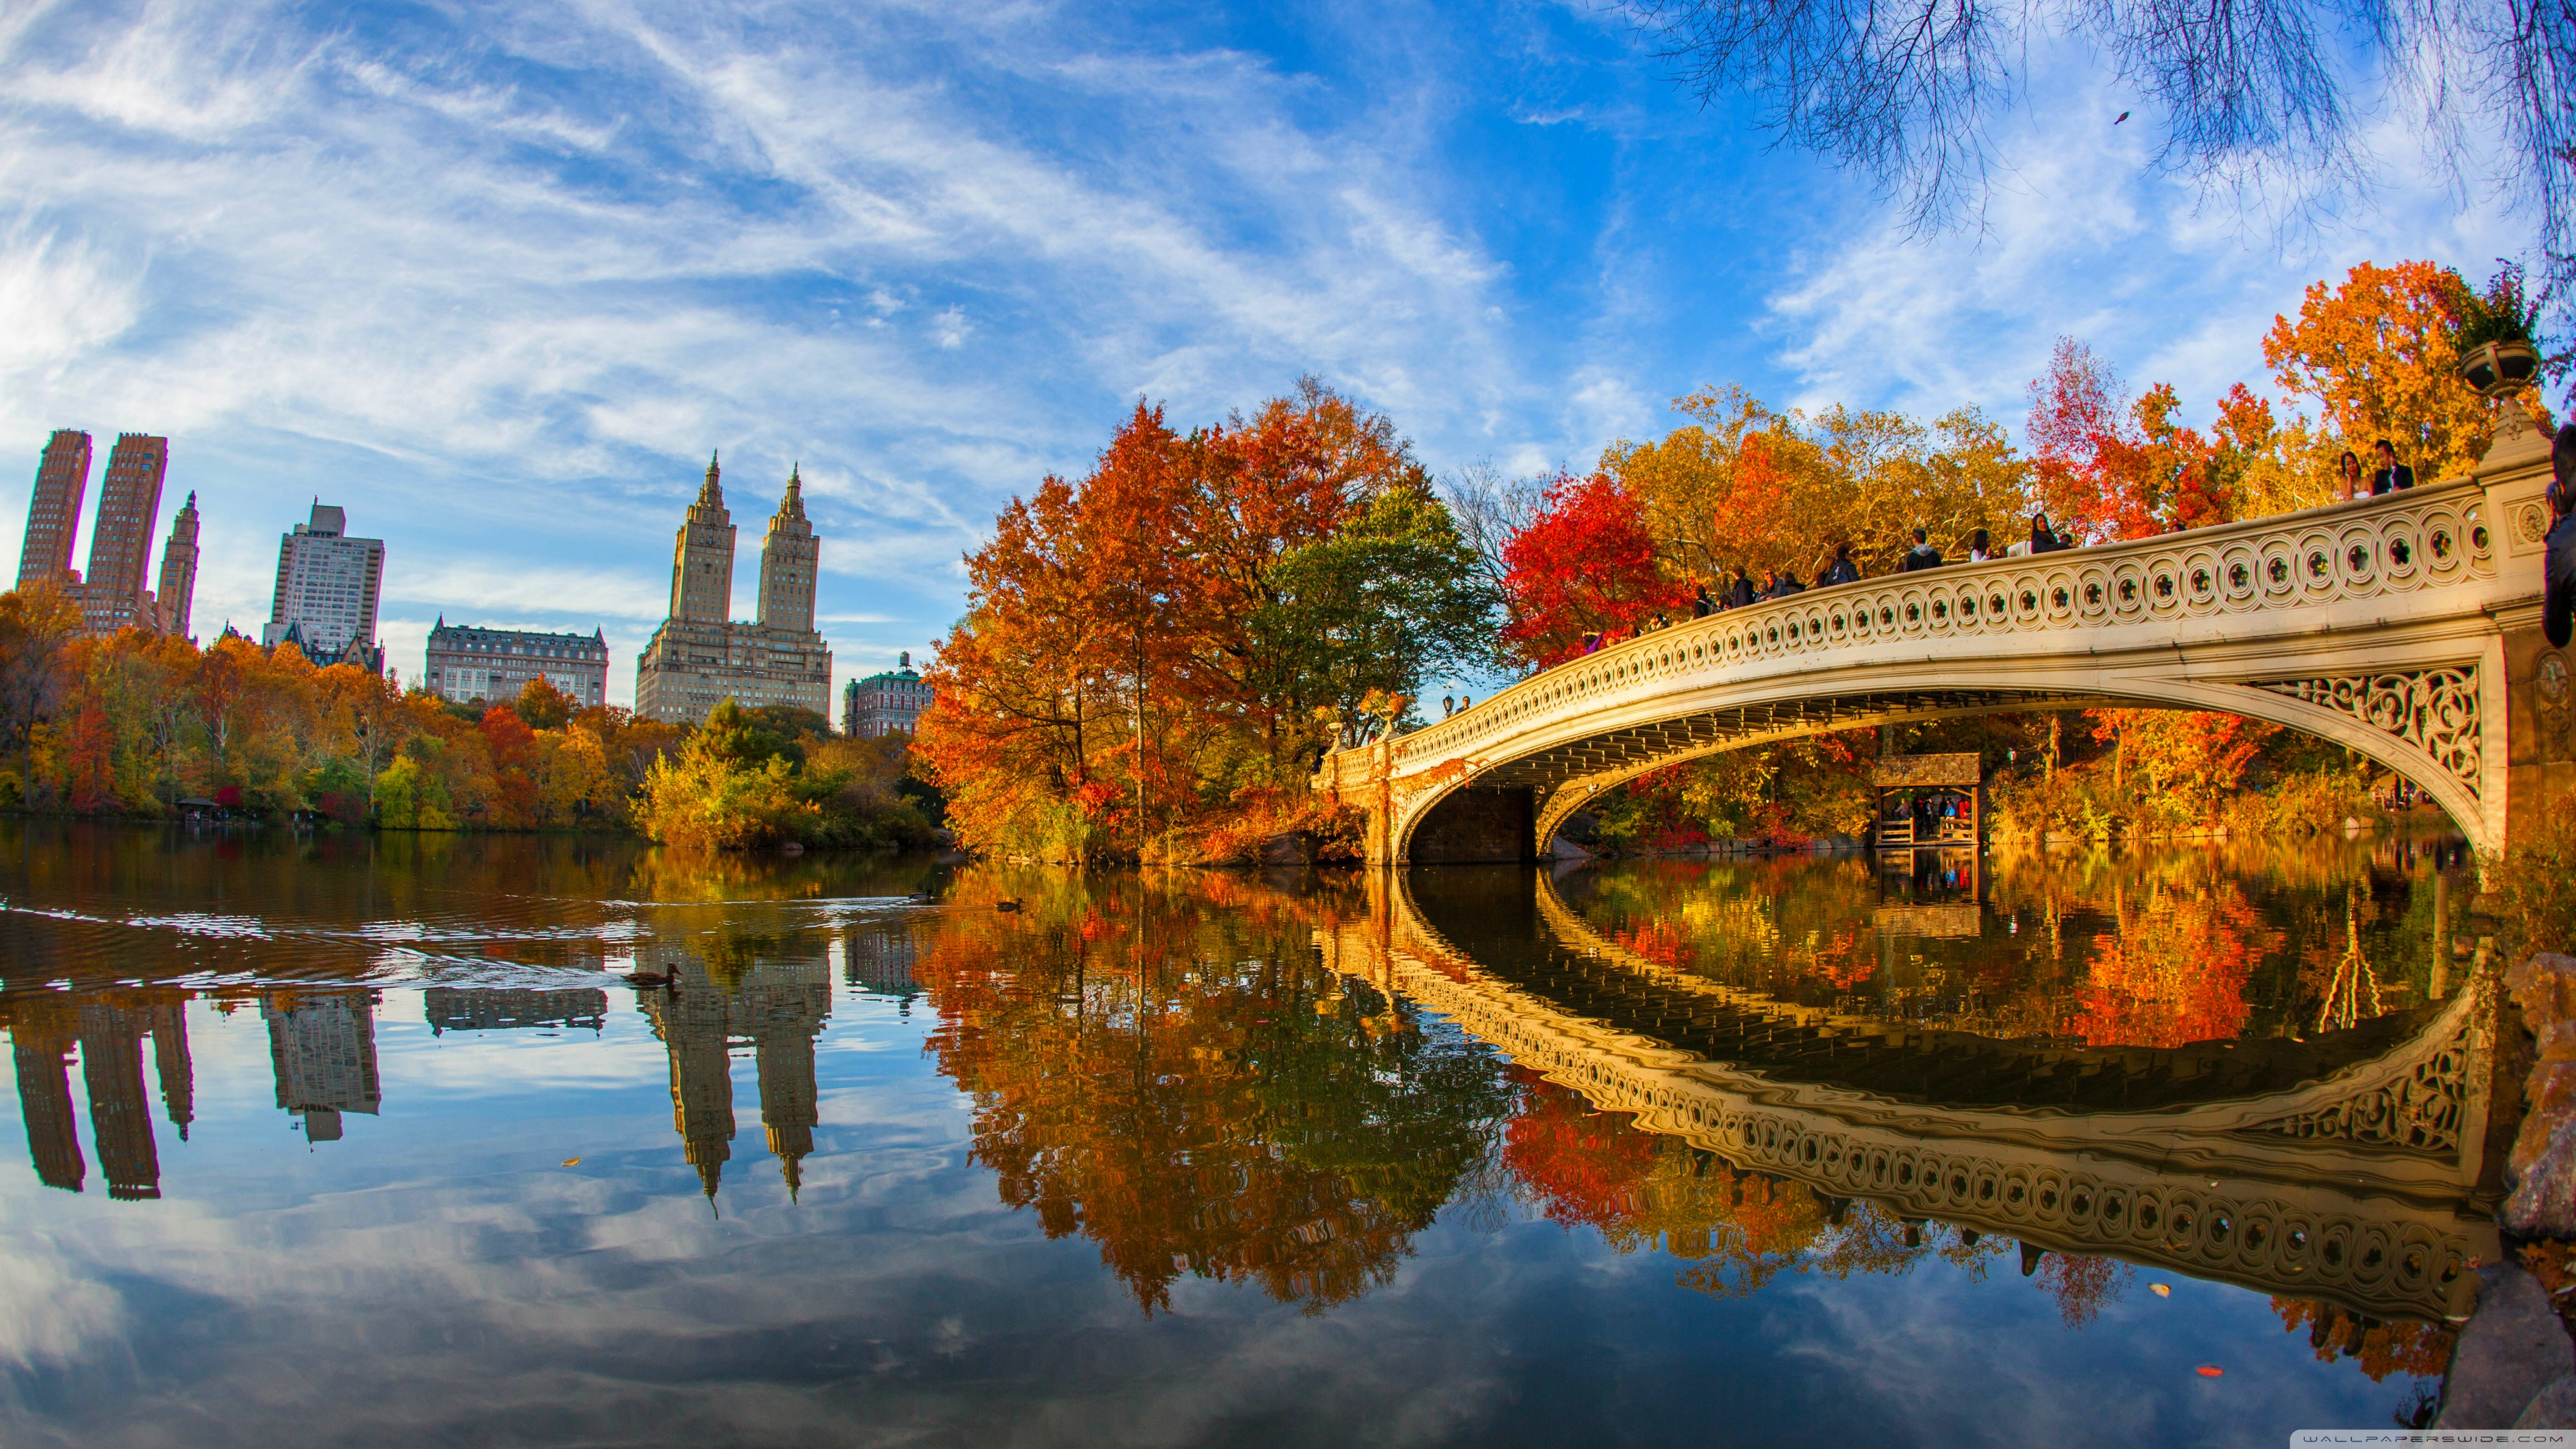 Fall Floiage Wallpaper Fall Foliage In Central Park New York City 4k Hd Desktop